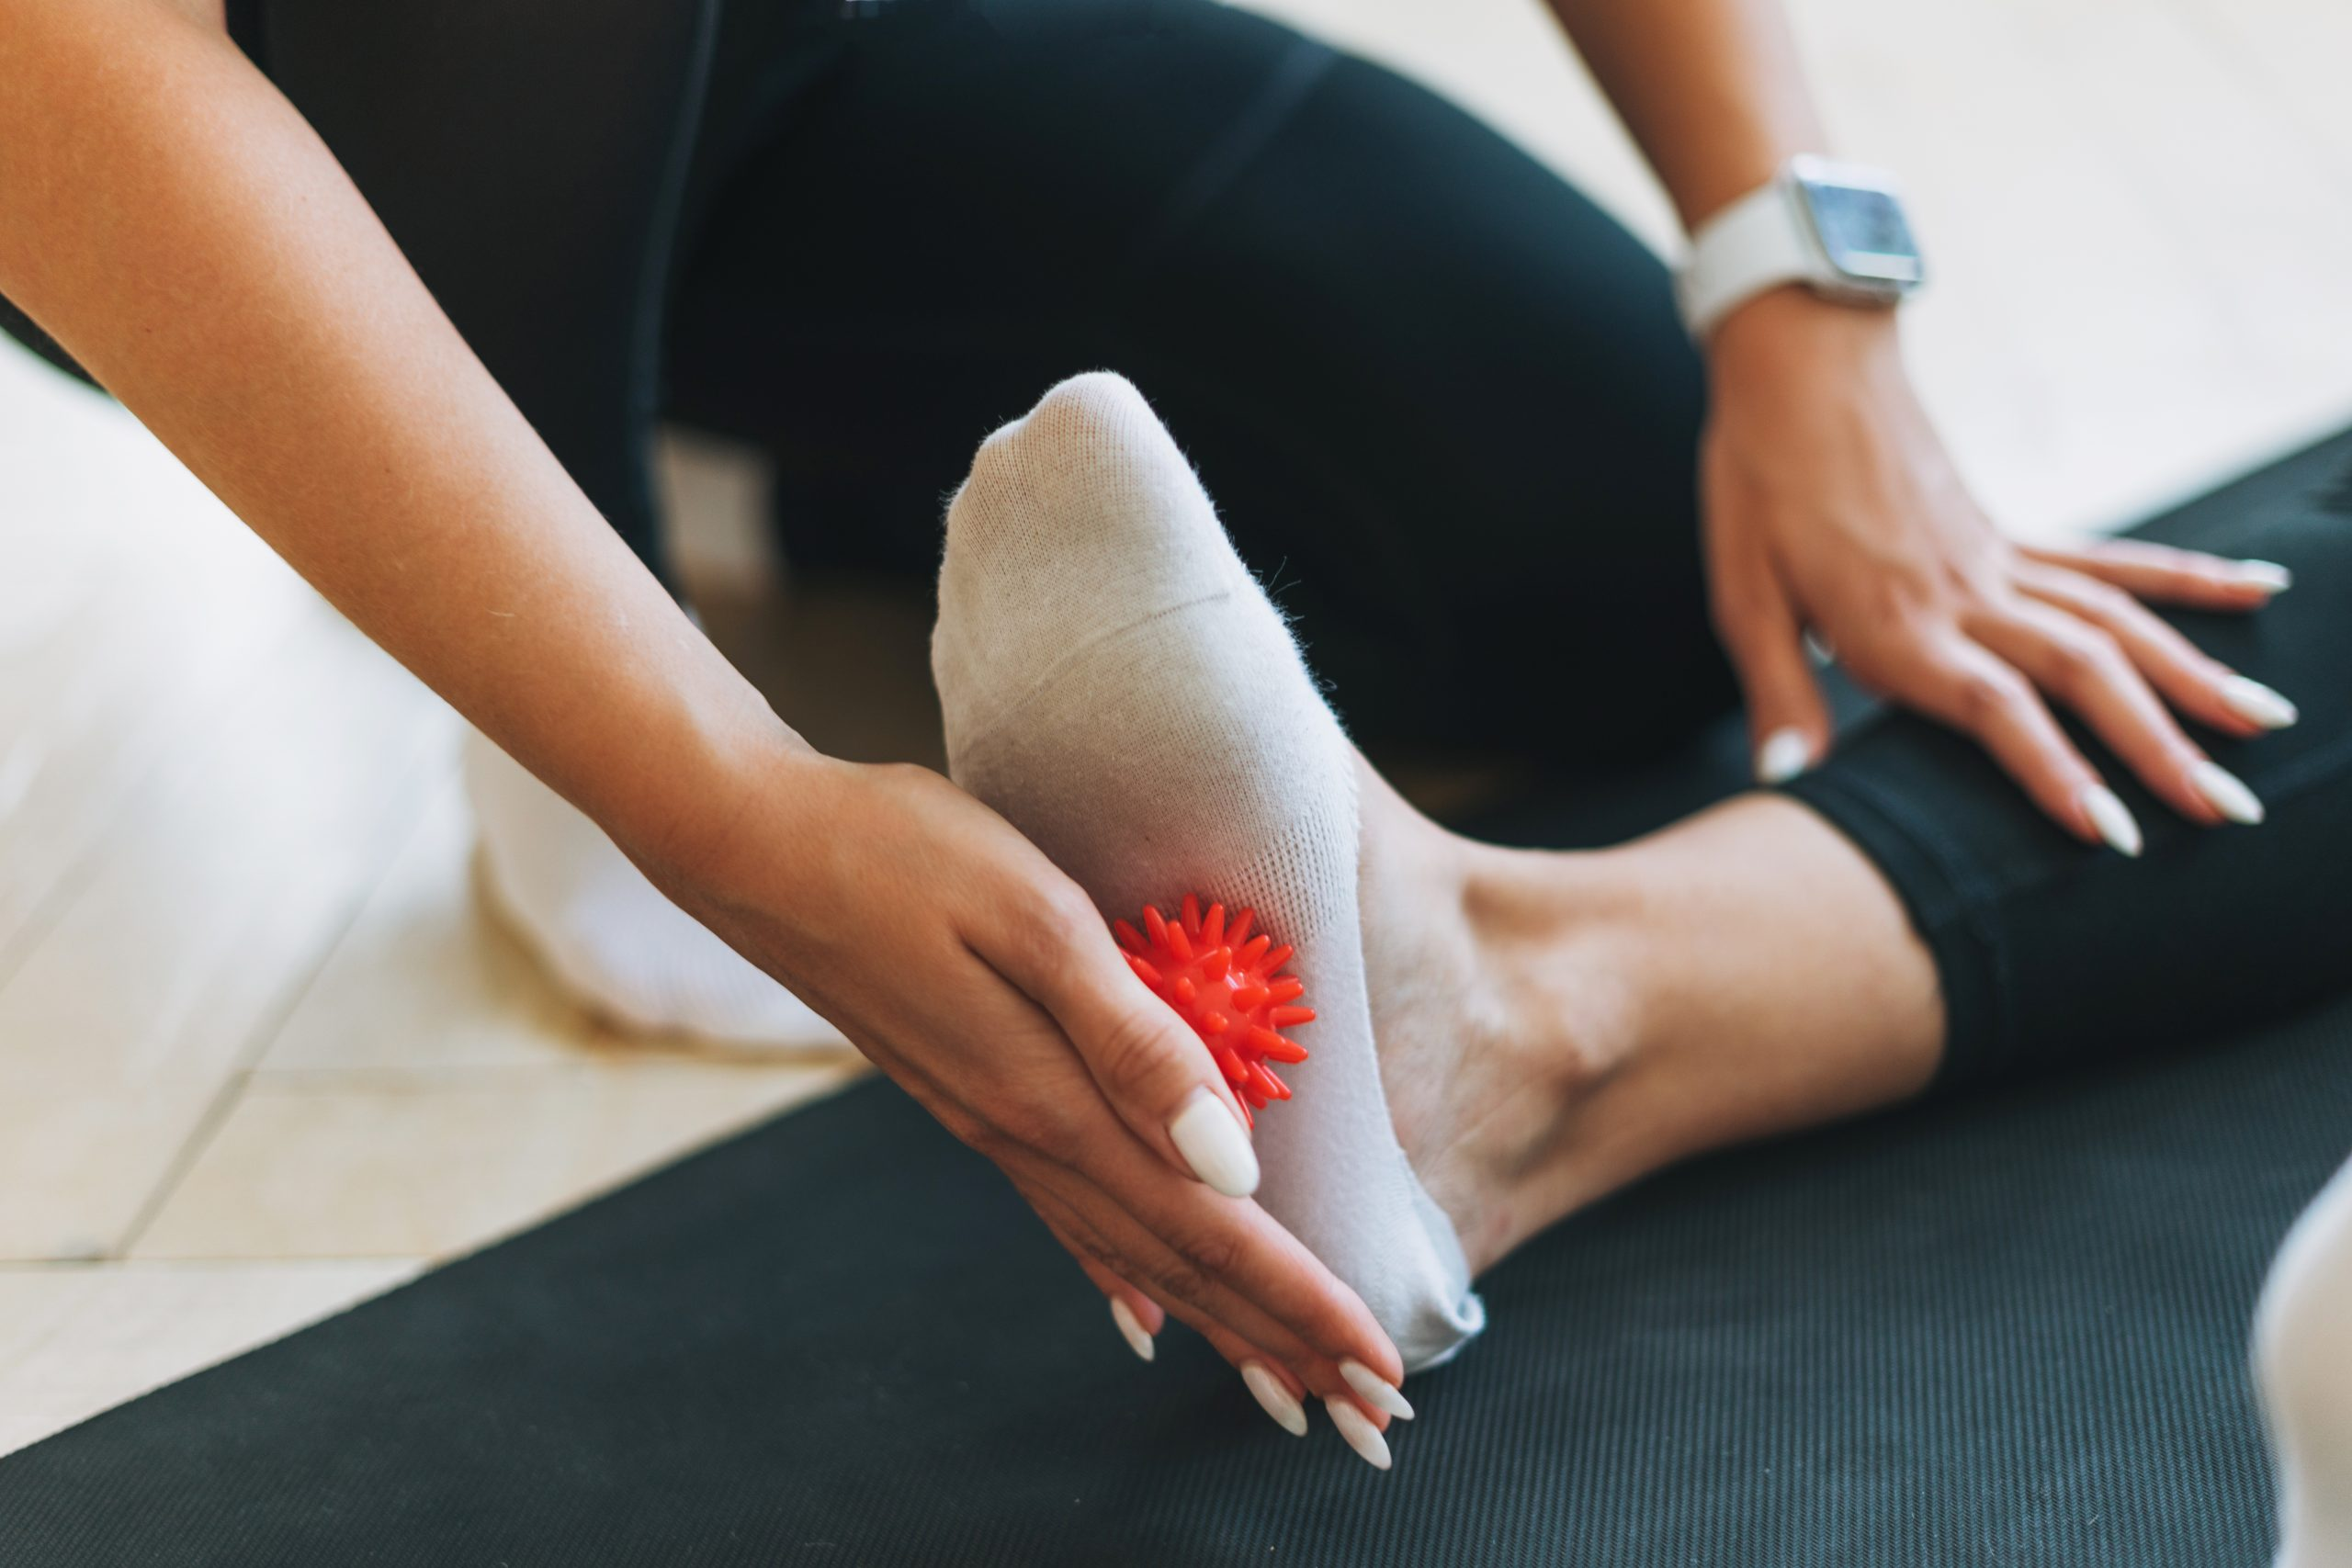 The trainer massages female feet with spiked ball, prevention of flat feet | | Featured Image for Identifying Flat Feet and Ankle Pronation | Blog